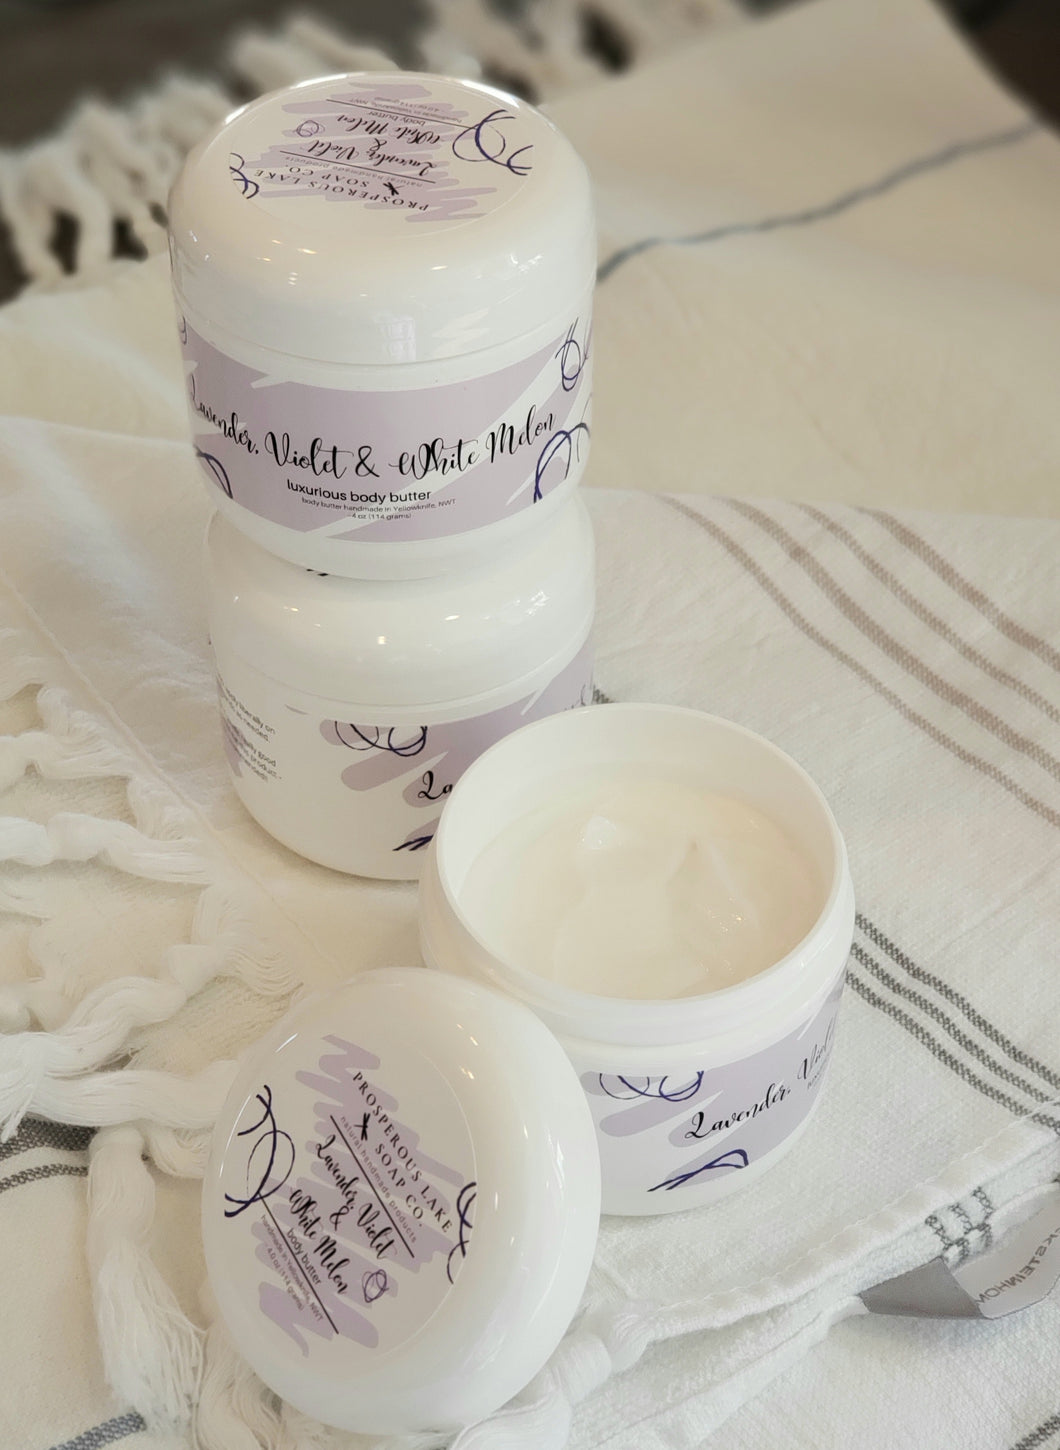 Lavender, Violet and White Melon Body Butter